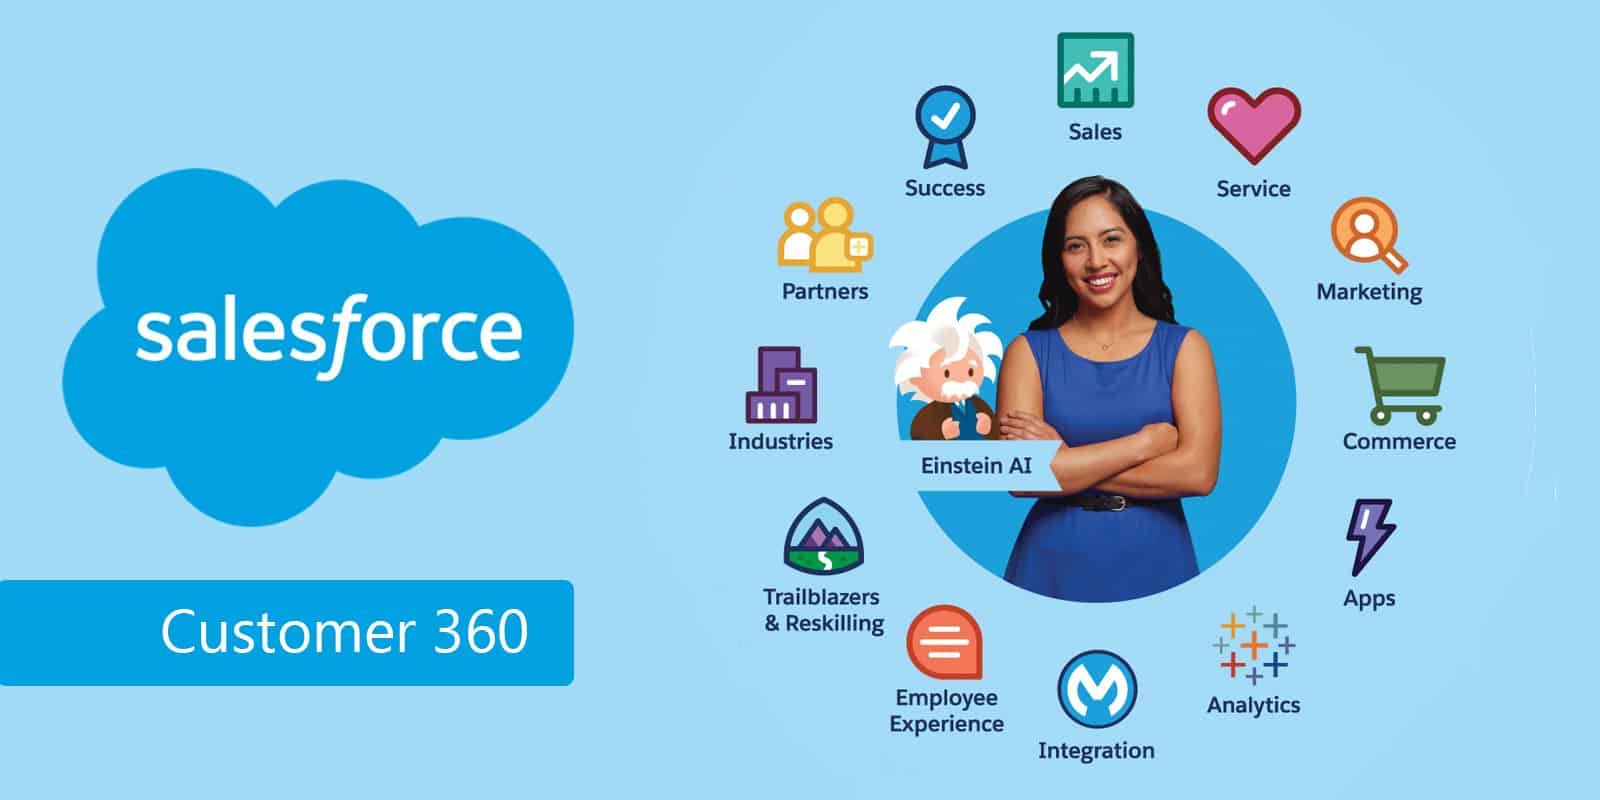 Salesforce-Customer-360